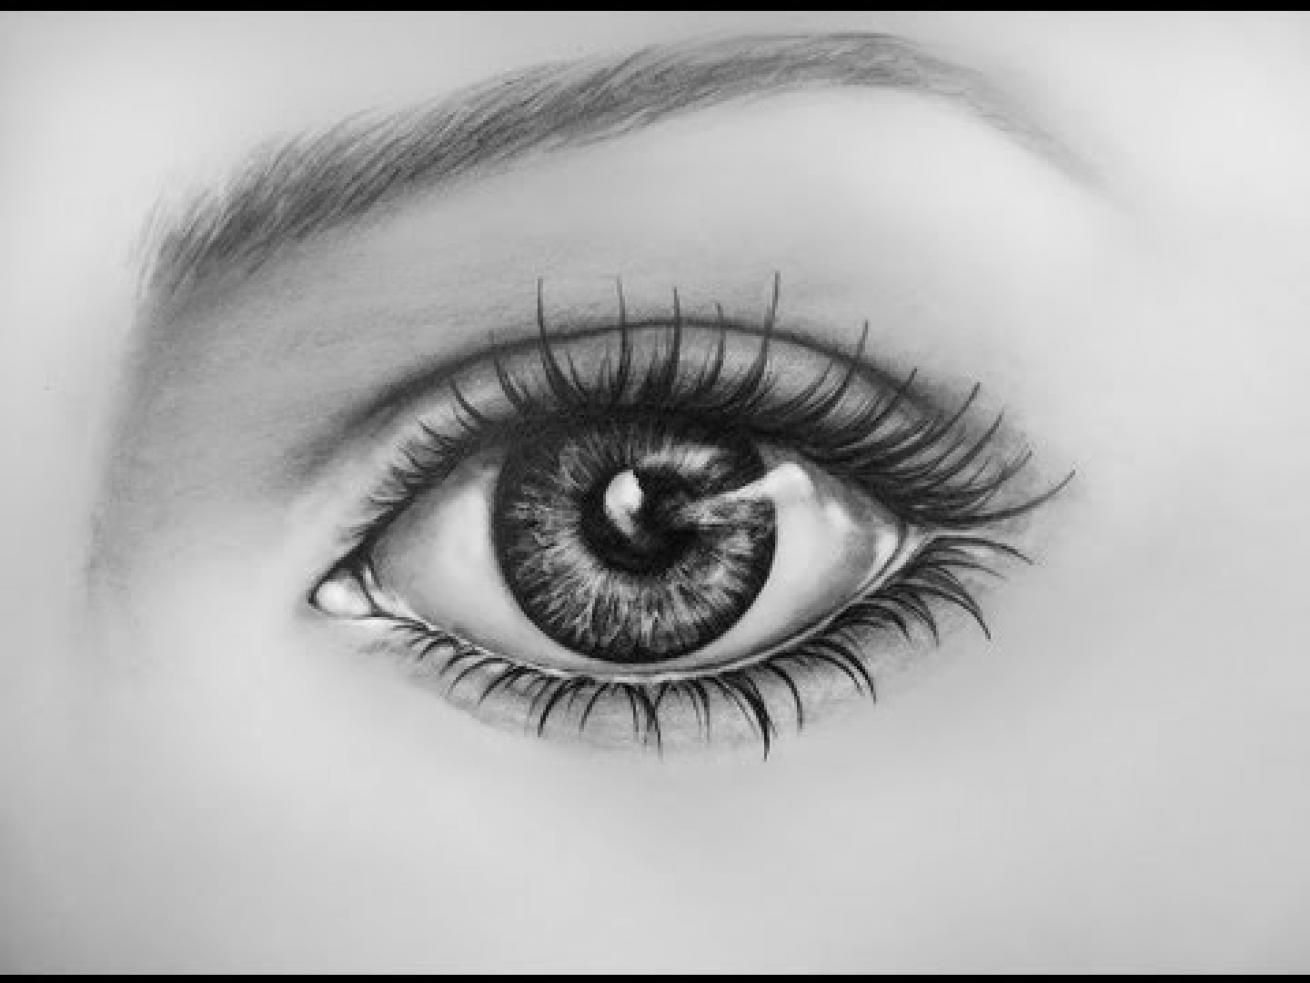 How To Draw An Eye Time Lapse Learn To Draw A Realistic Eye With Pencil Jpg 1310 983 Eye Drawing Realistic Drawings Eye Drawing Simple